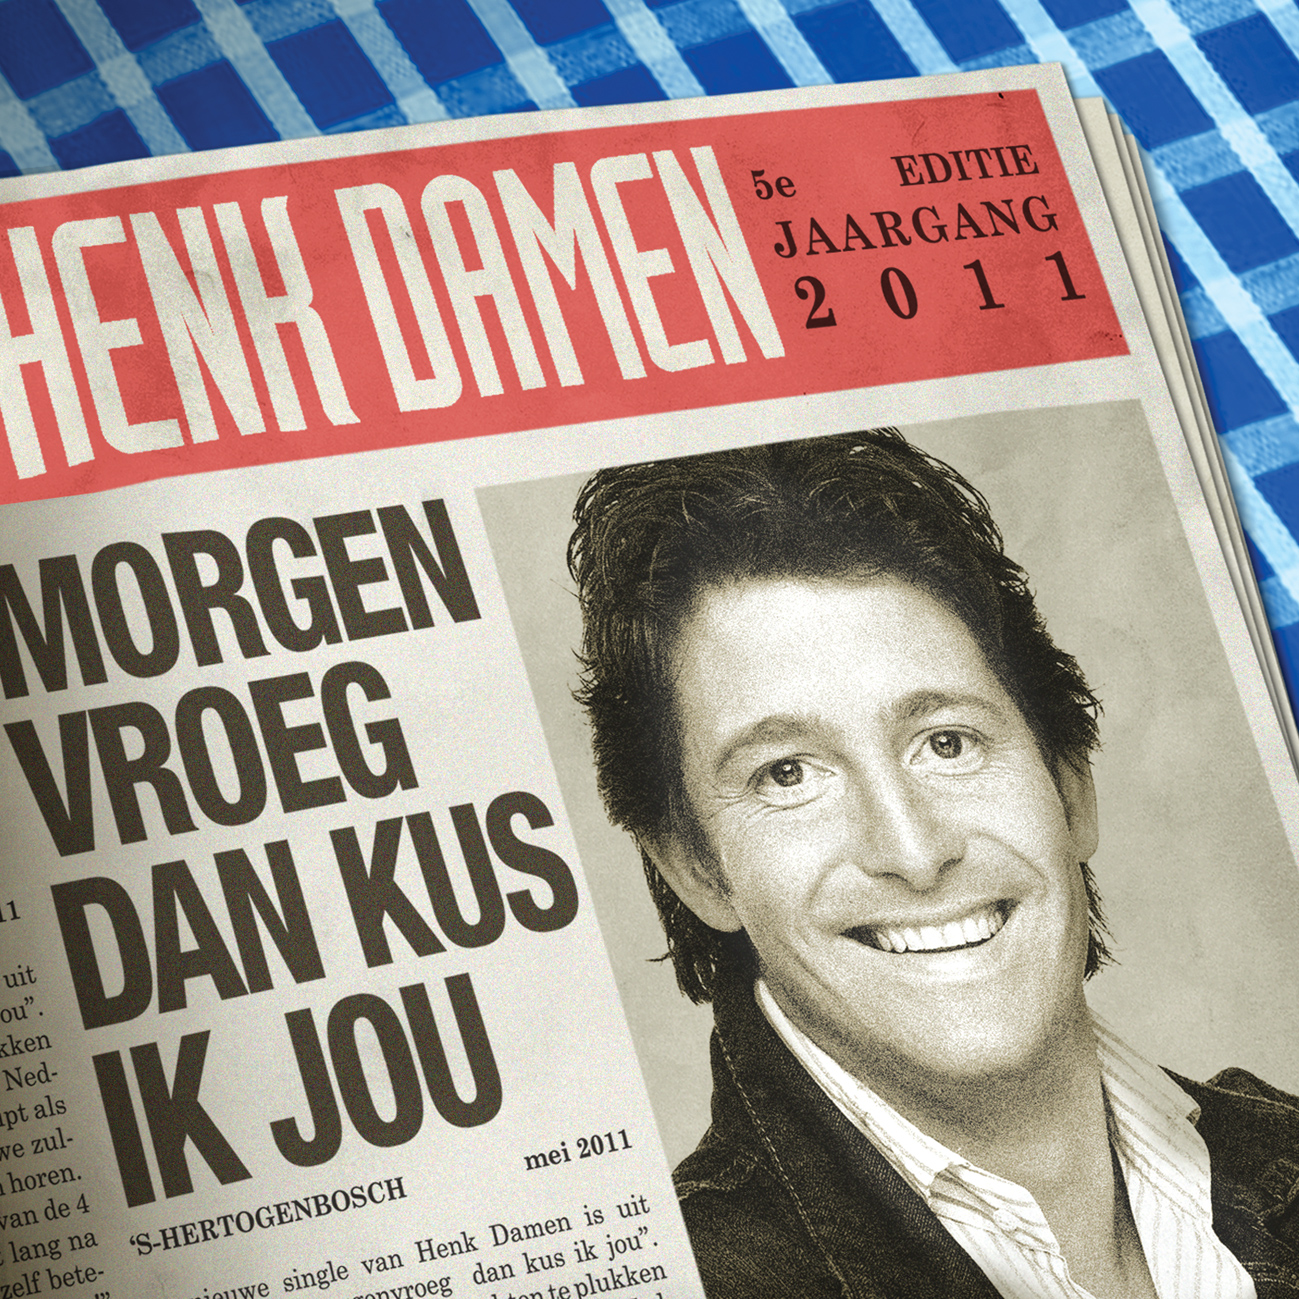 cover CDS HD Morgenvroeg